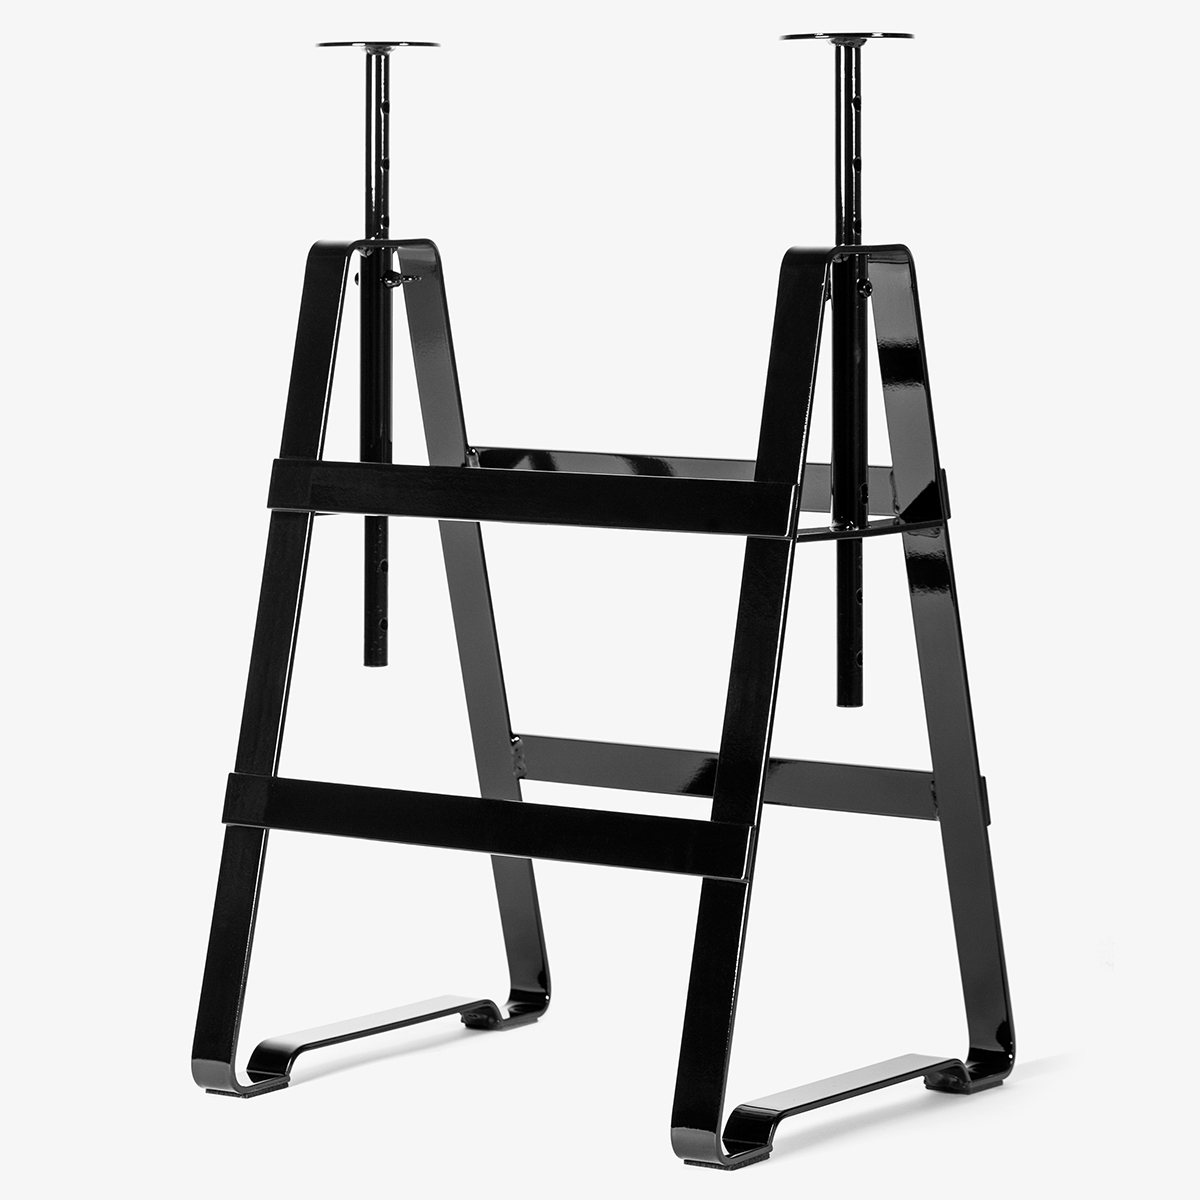 Design Thesenfitz & Wedekind A height adjustable trestle made from crude steel powder-coated in black glossy